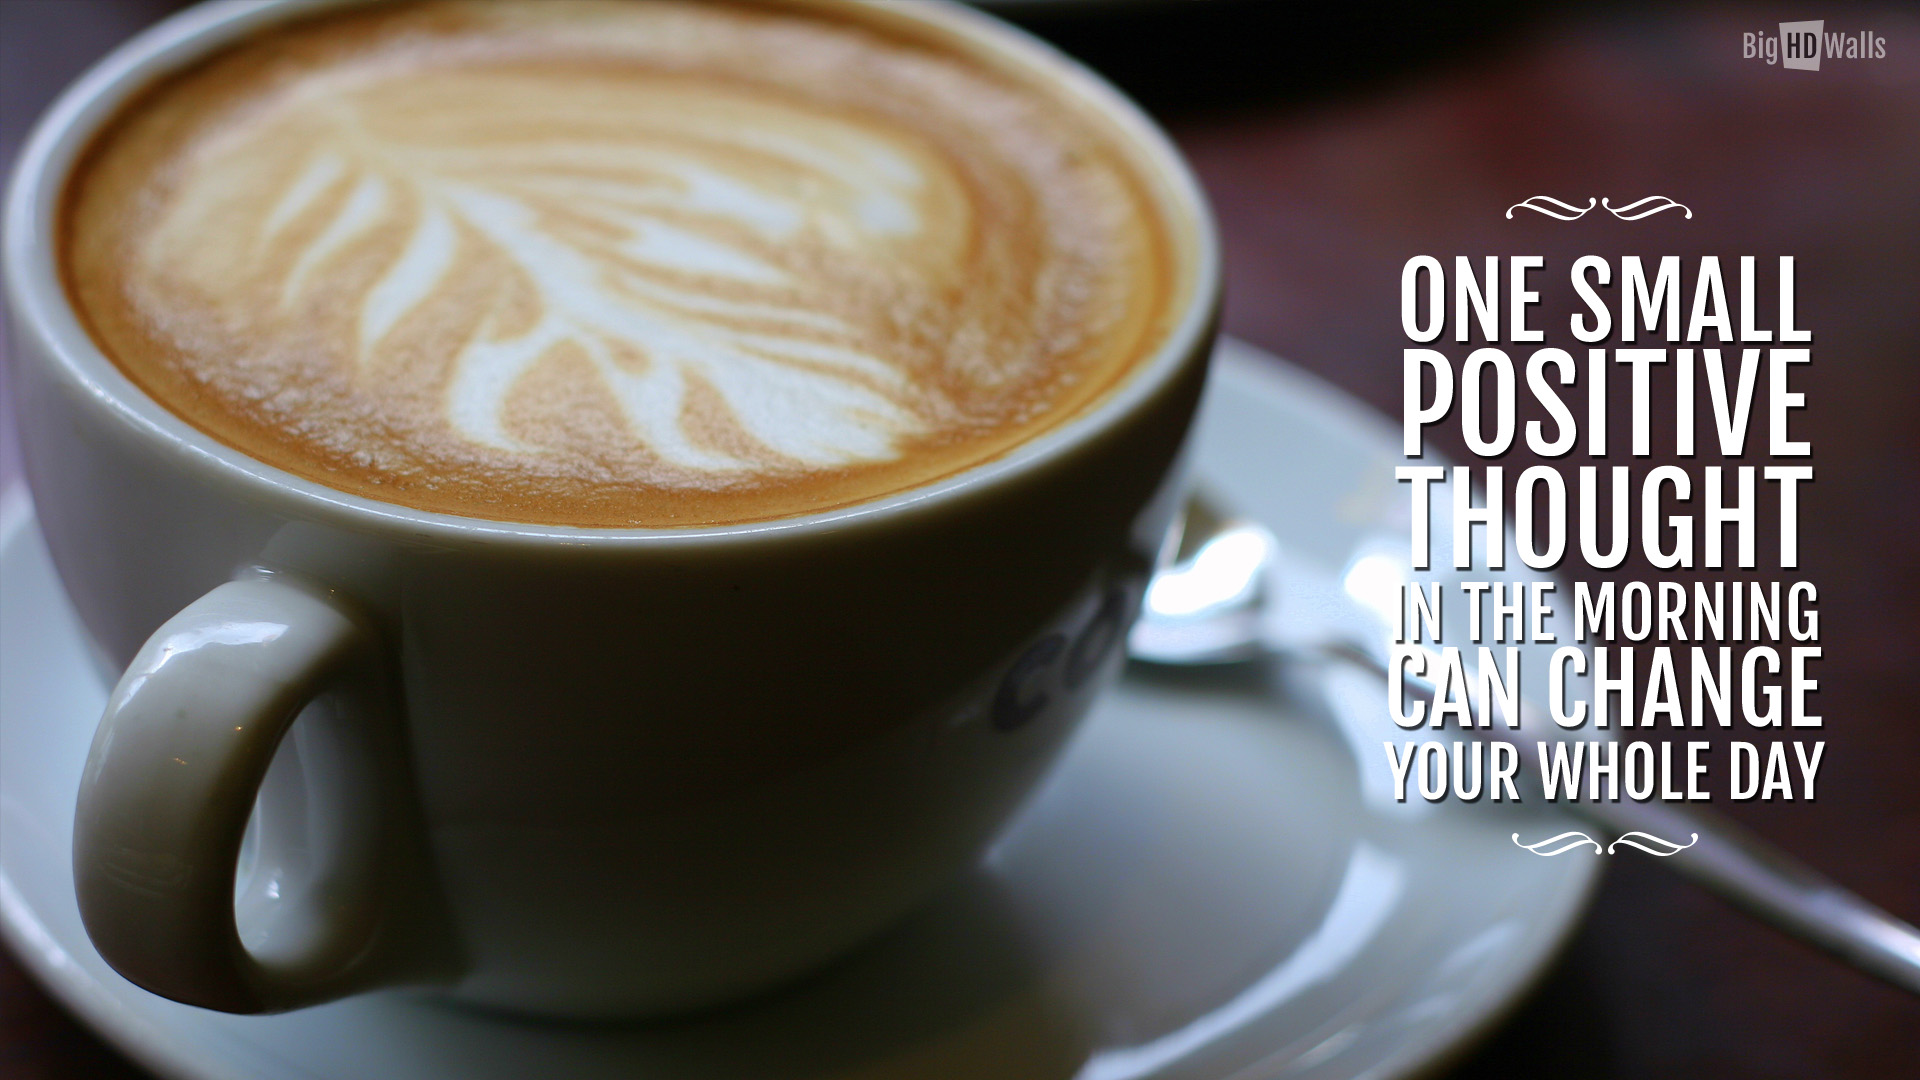 Image From Bighdwalls One Cup Of Coffee Quotes 1920x1080 Wallpaper Teahub Io